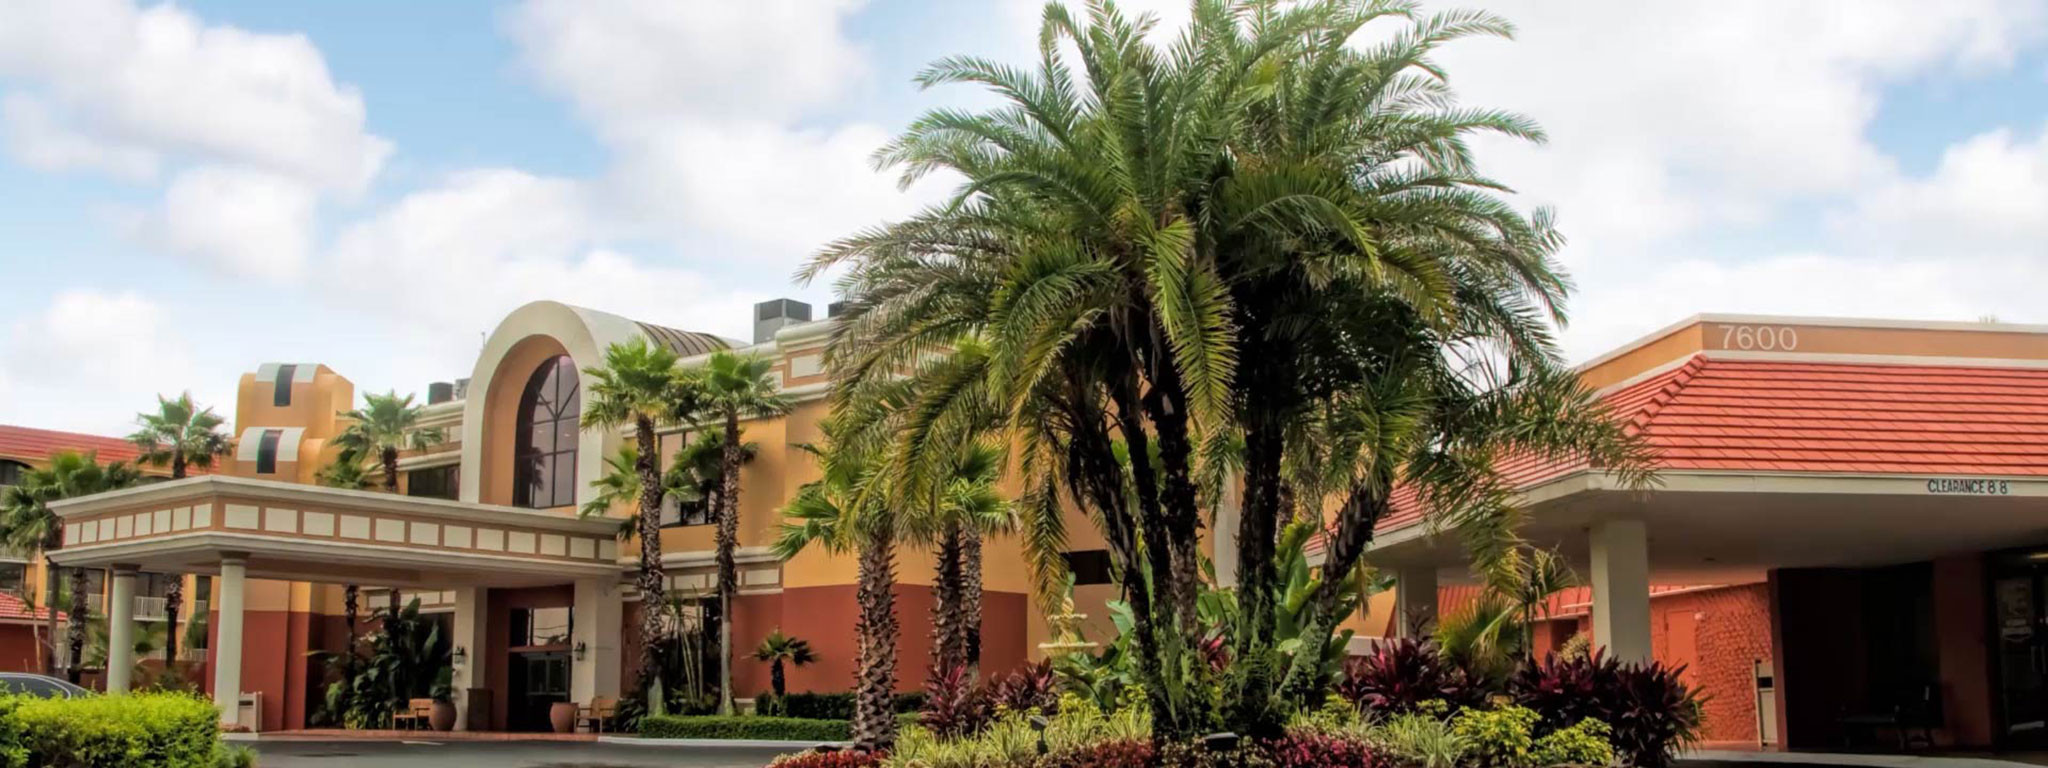 Kissimmee hotel near Disney's Blizzard Beach and Hollywood Studios | Westgate Towers Resort in Kissimmee, Florida